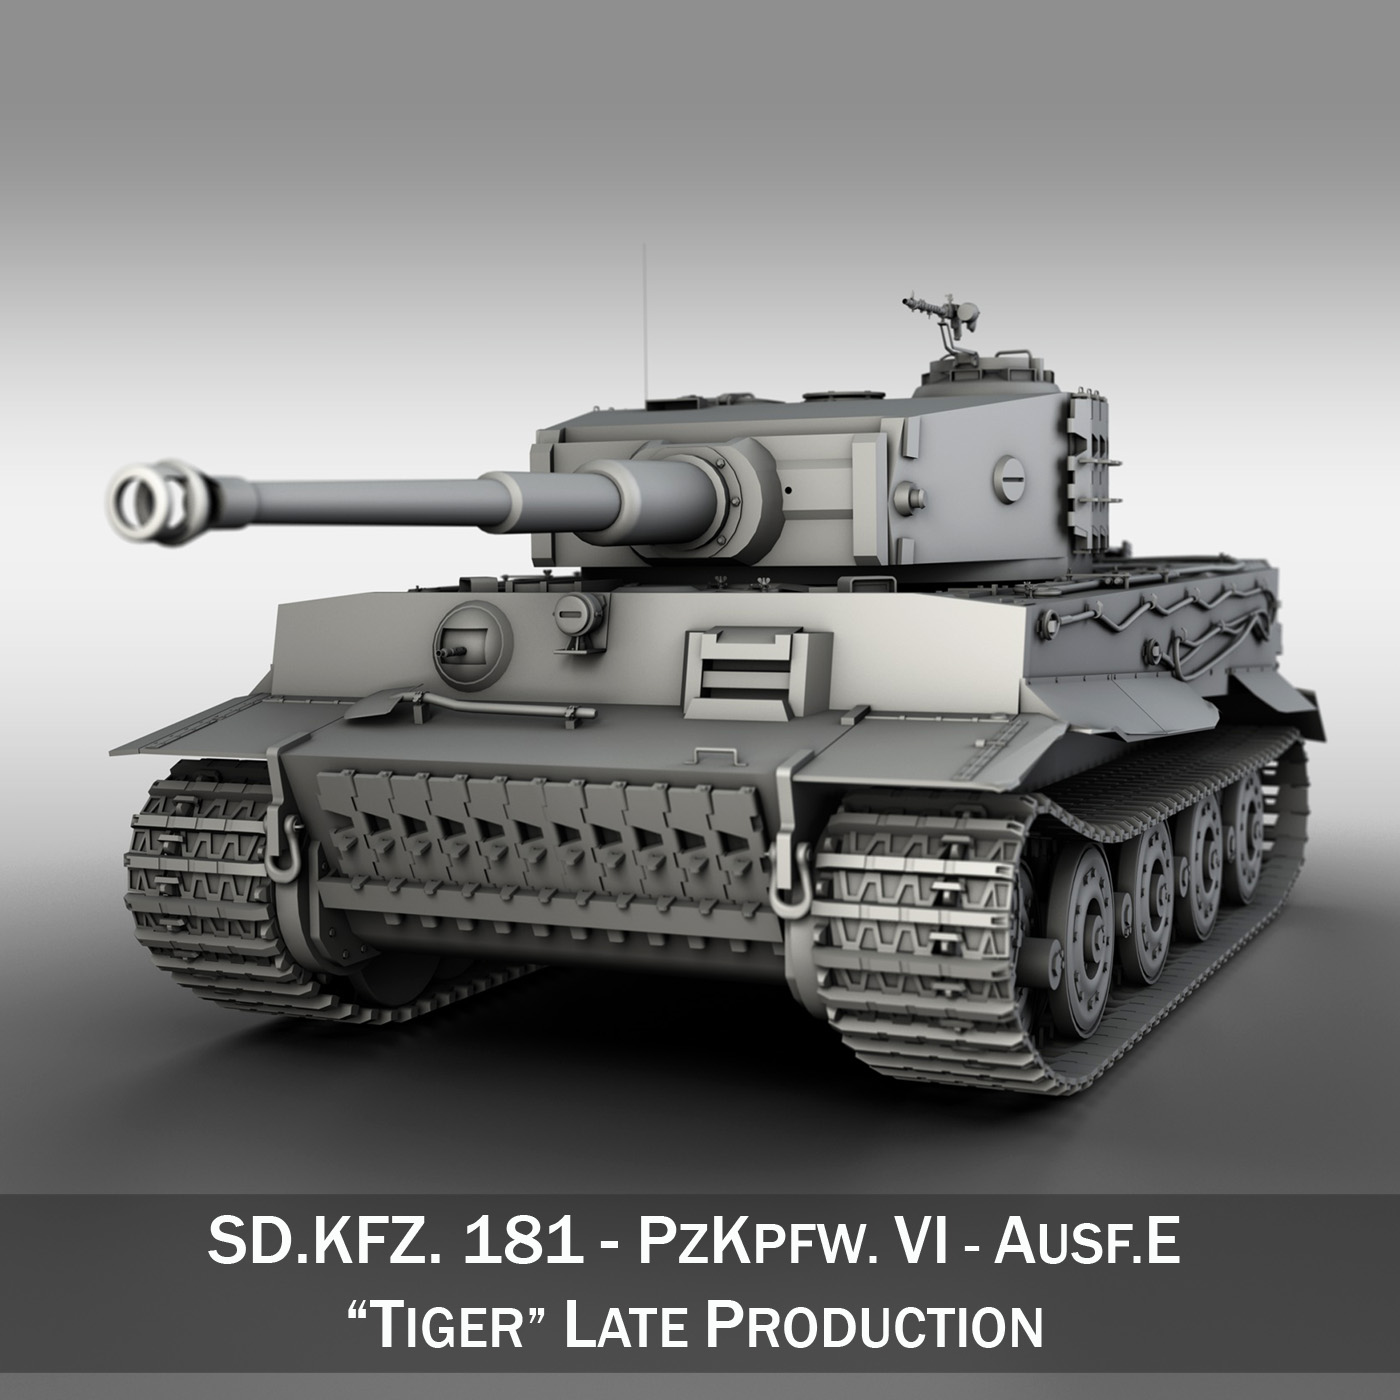 Panzer VI - Tiger - Late Production 3d model 3ds fbx c4d lwo lws lw obj 292946